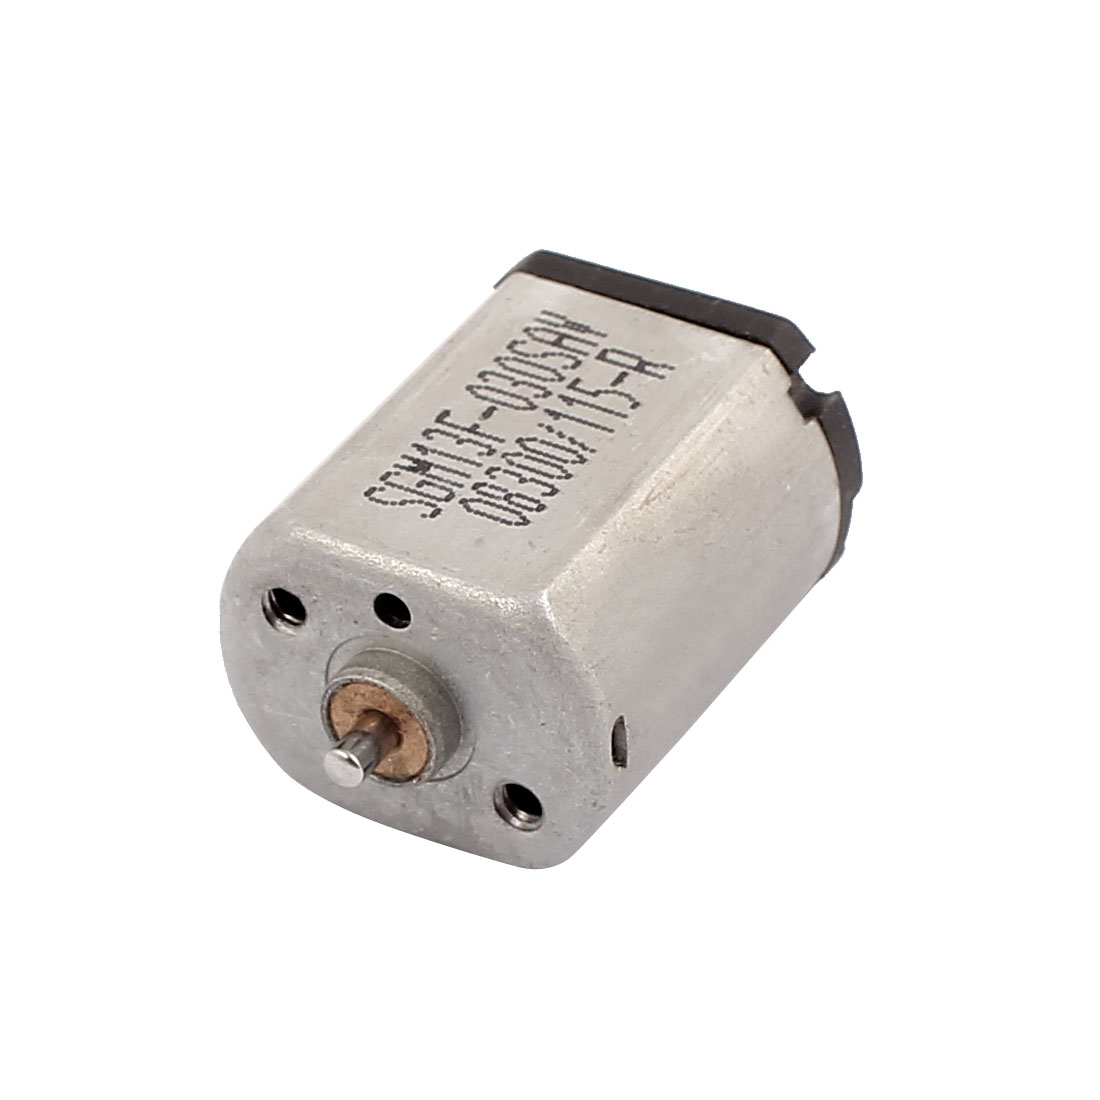 DC 3-6V 10500RPM Large Torque Micro Vibration DC Motor for Electric Massage